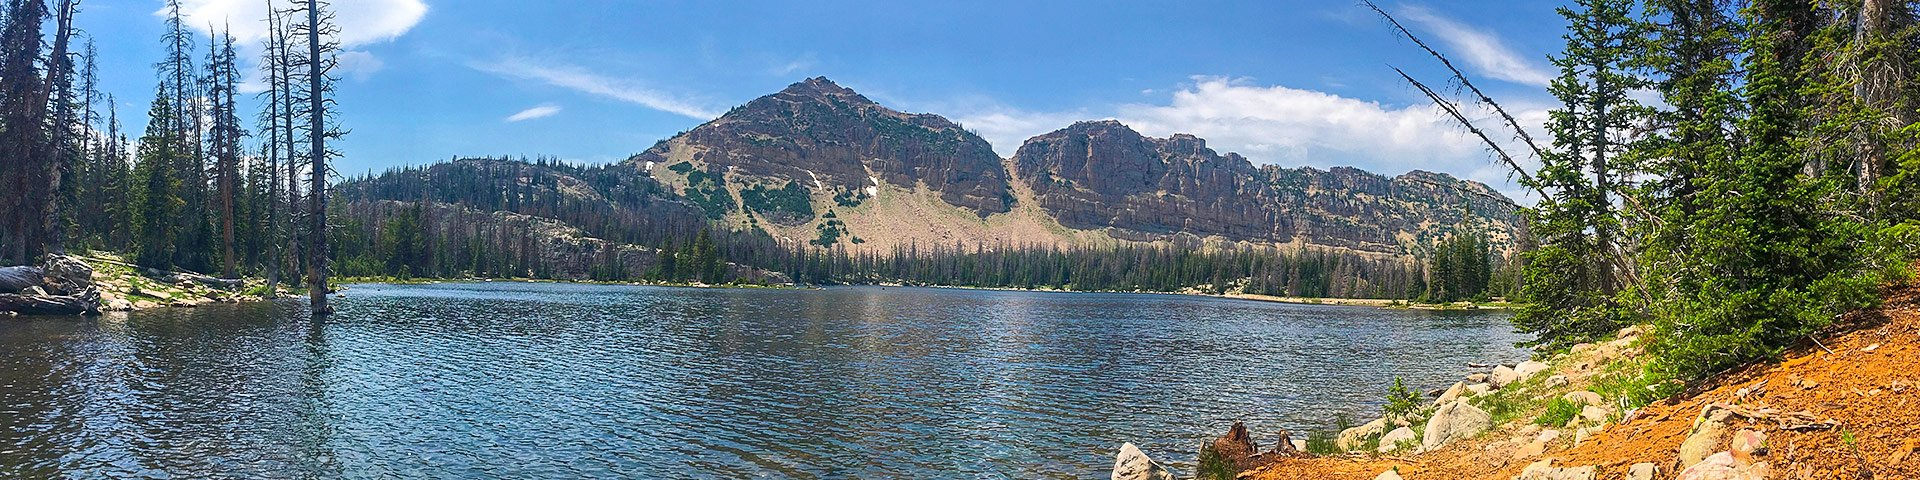 Best Hikes in Uinta Mountains, Utah